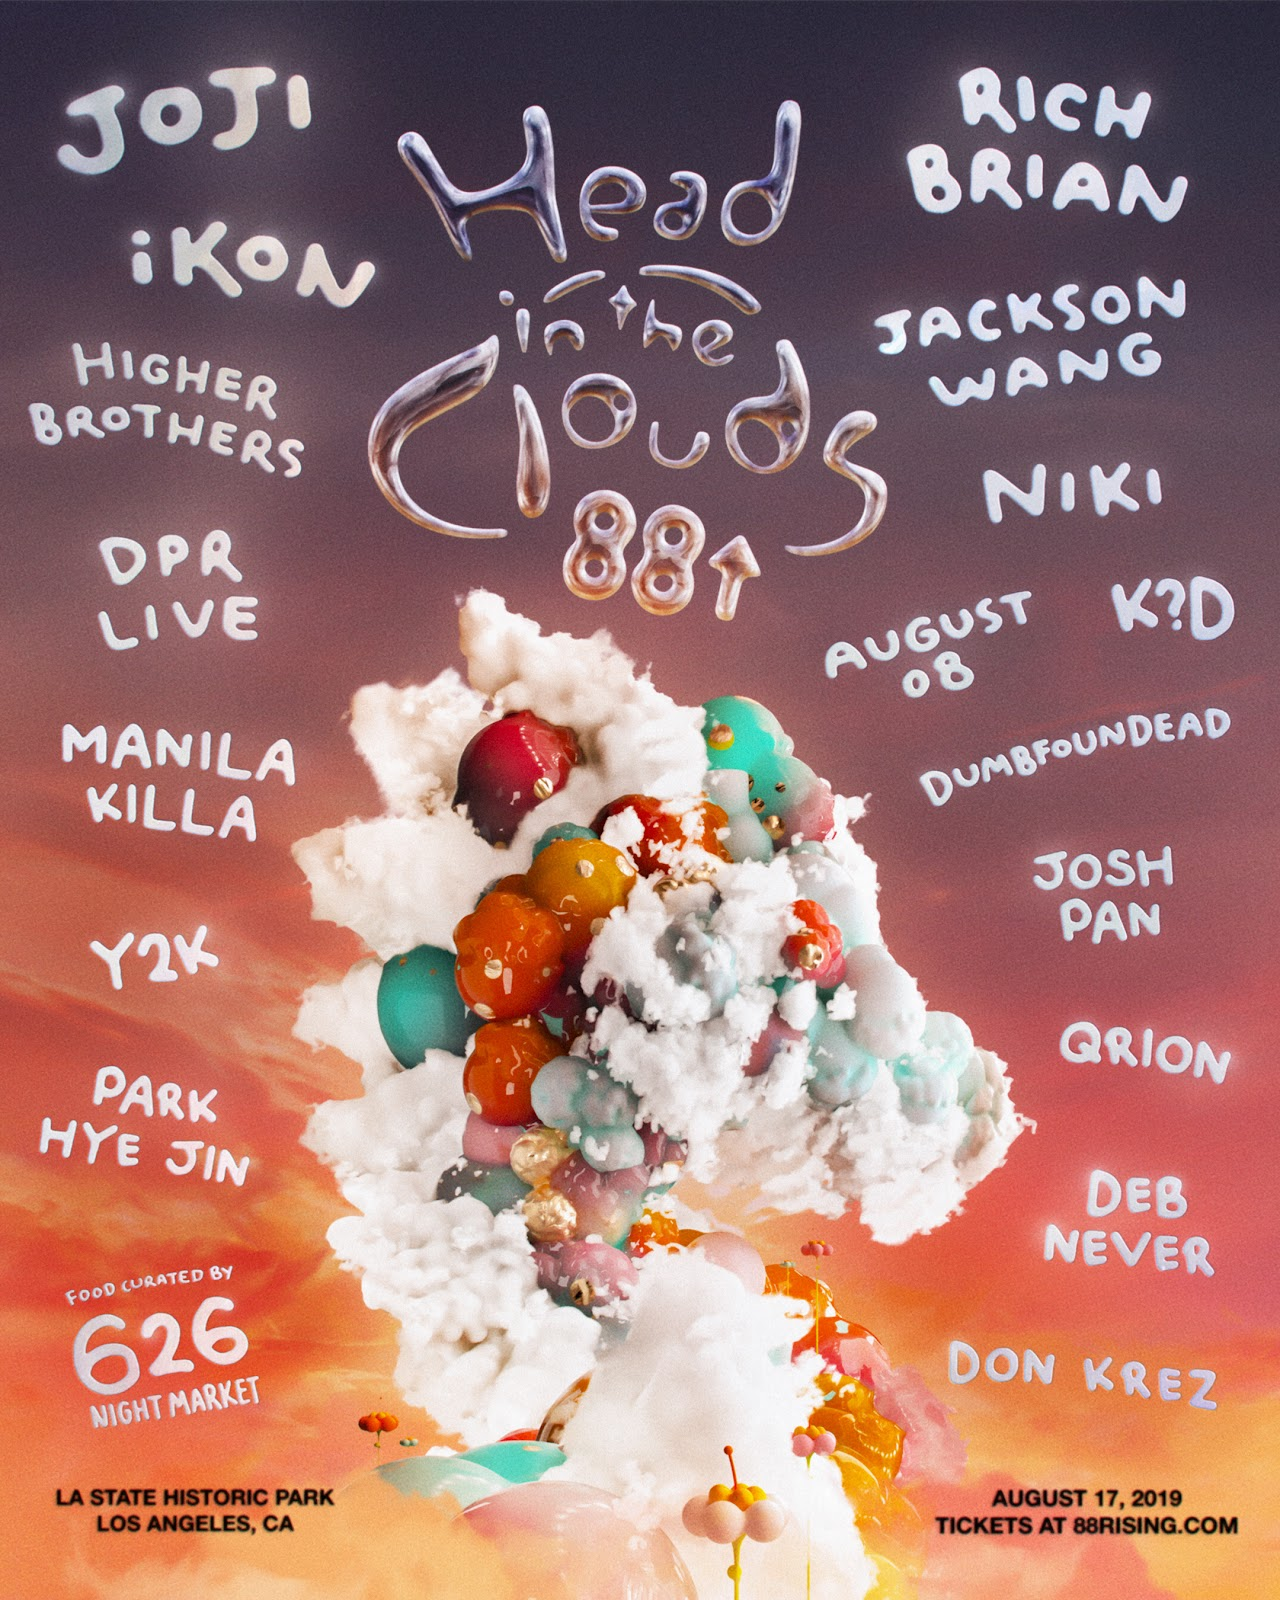 88Rising announces full lineup and new electronic stage for Head in the Clouds Festival 2019JtzqYgaaFd9b1di42JgJNmH 3YySAboYOH 3u6JJn82bAnsQavHROjVWR1PdTu81fzGVOWmAmp8adZi 7Dpil7SCSqvaZ9kRaYk5yUv WqlQPOhLjs5Lgzfi8YfqKVt3I